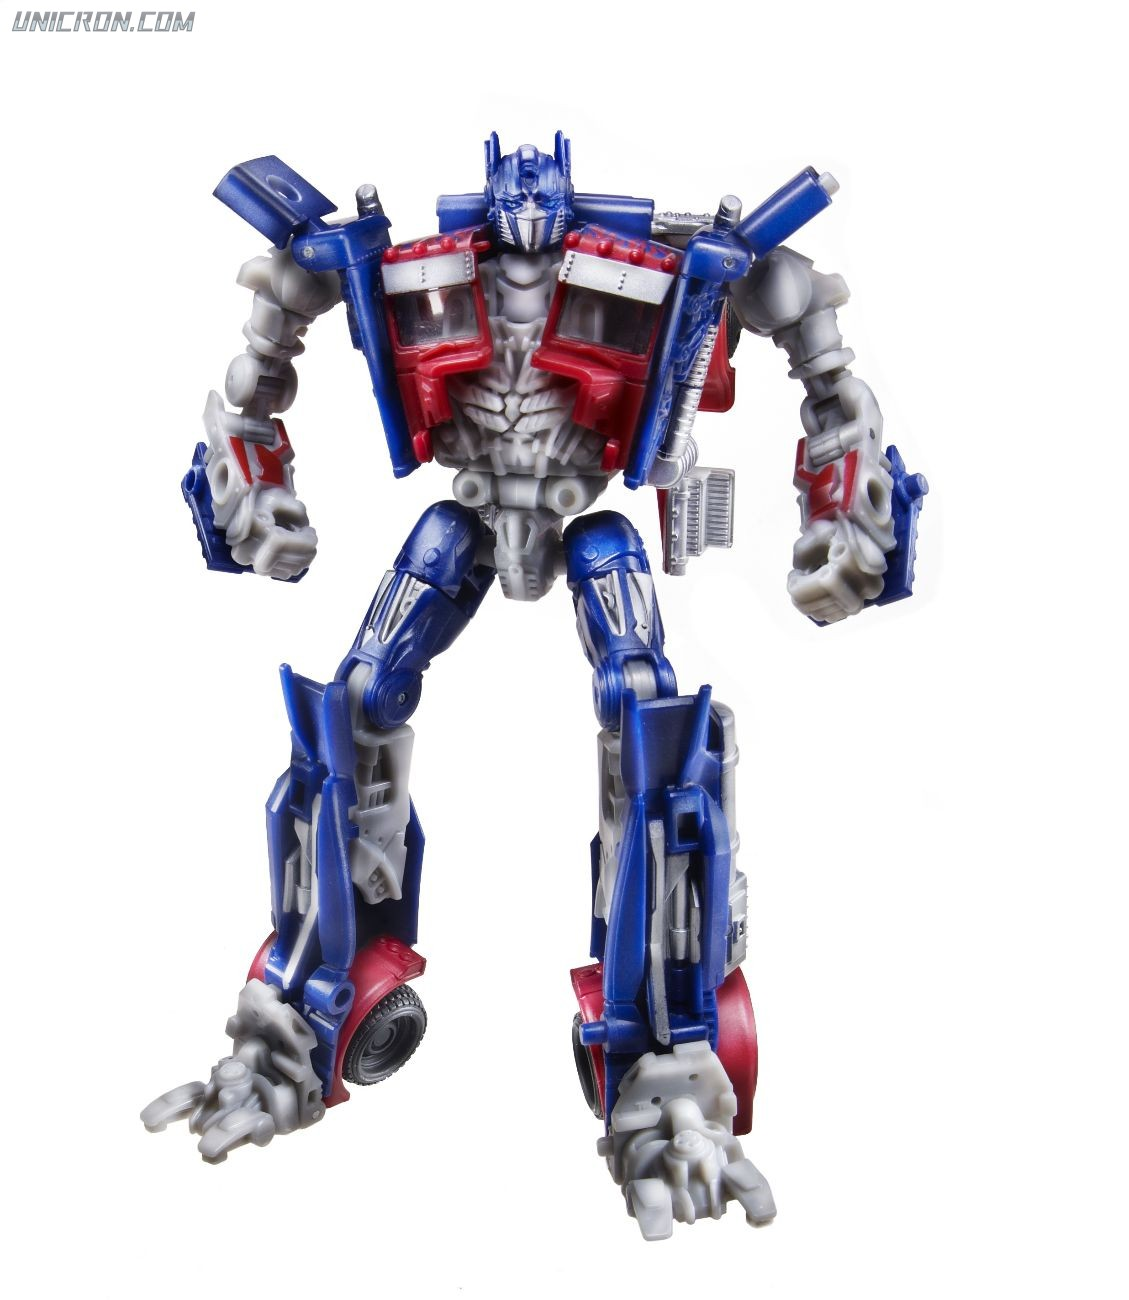 Transformers 3 Dark of the Moon Optimus Prime w/ trailer (Movie Trilogy) toy